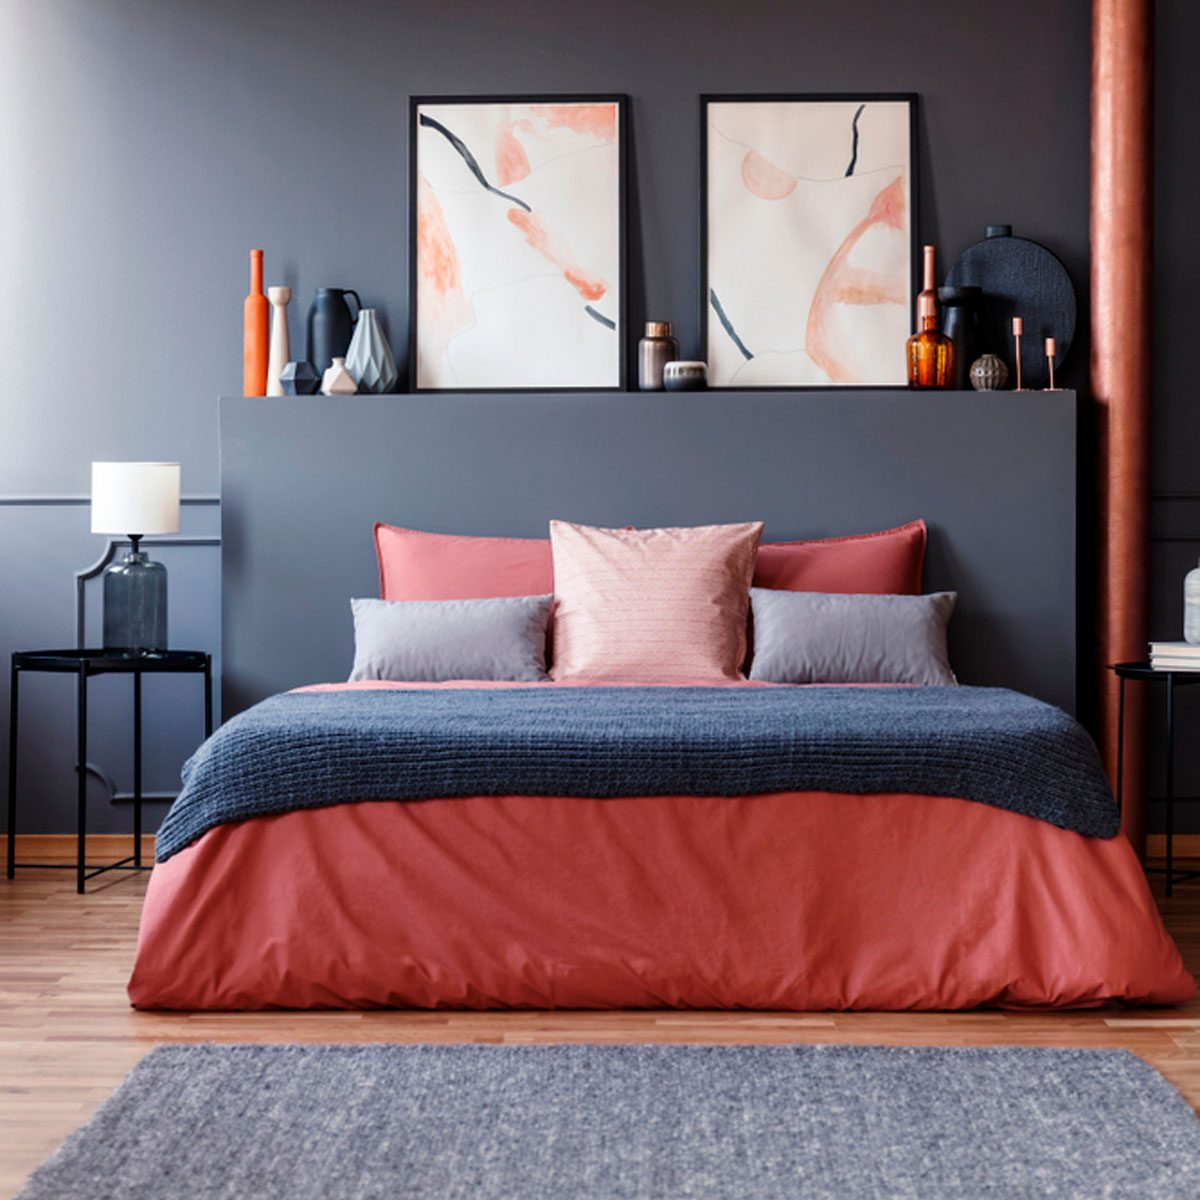 10 Amazing Headboard Ideas Thatll Make Your Bedroom Better The